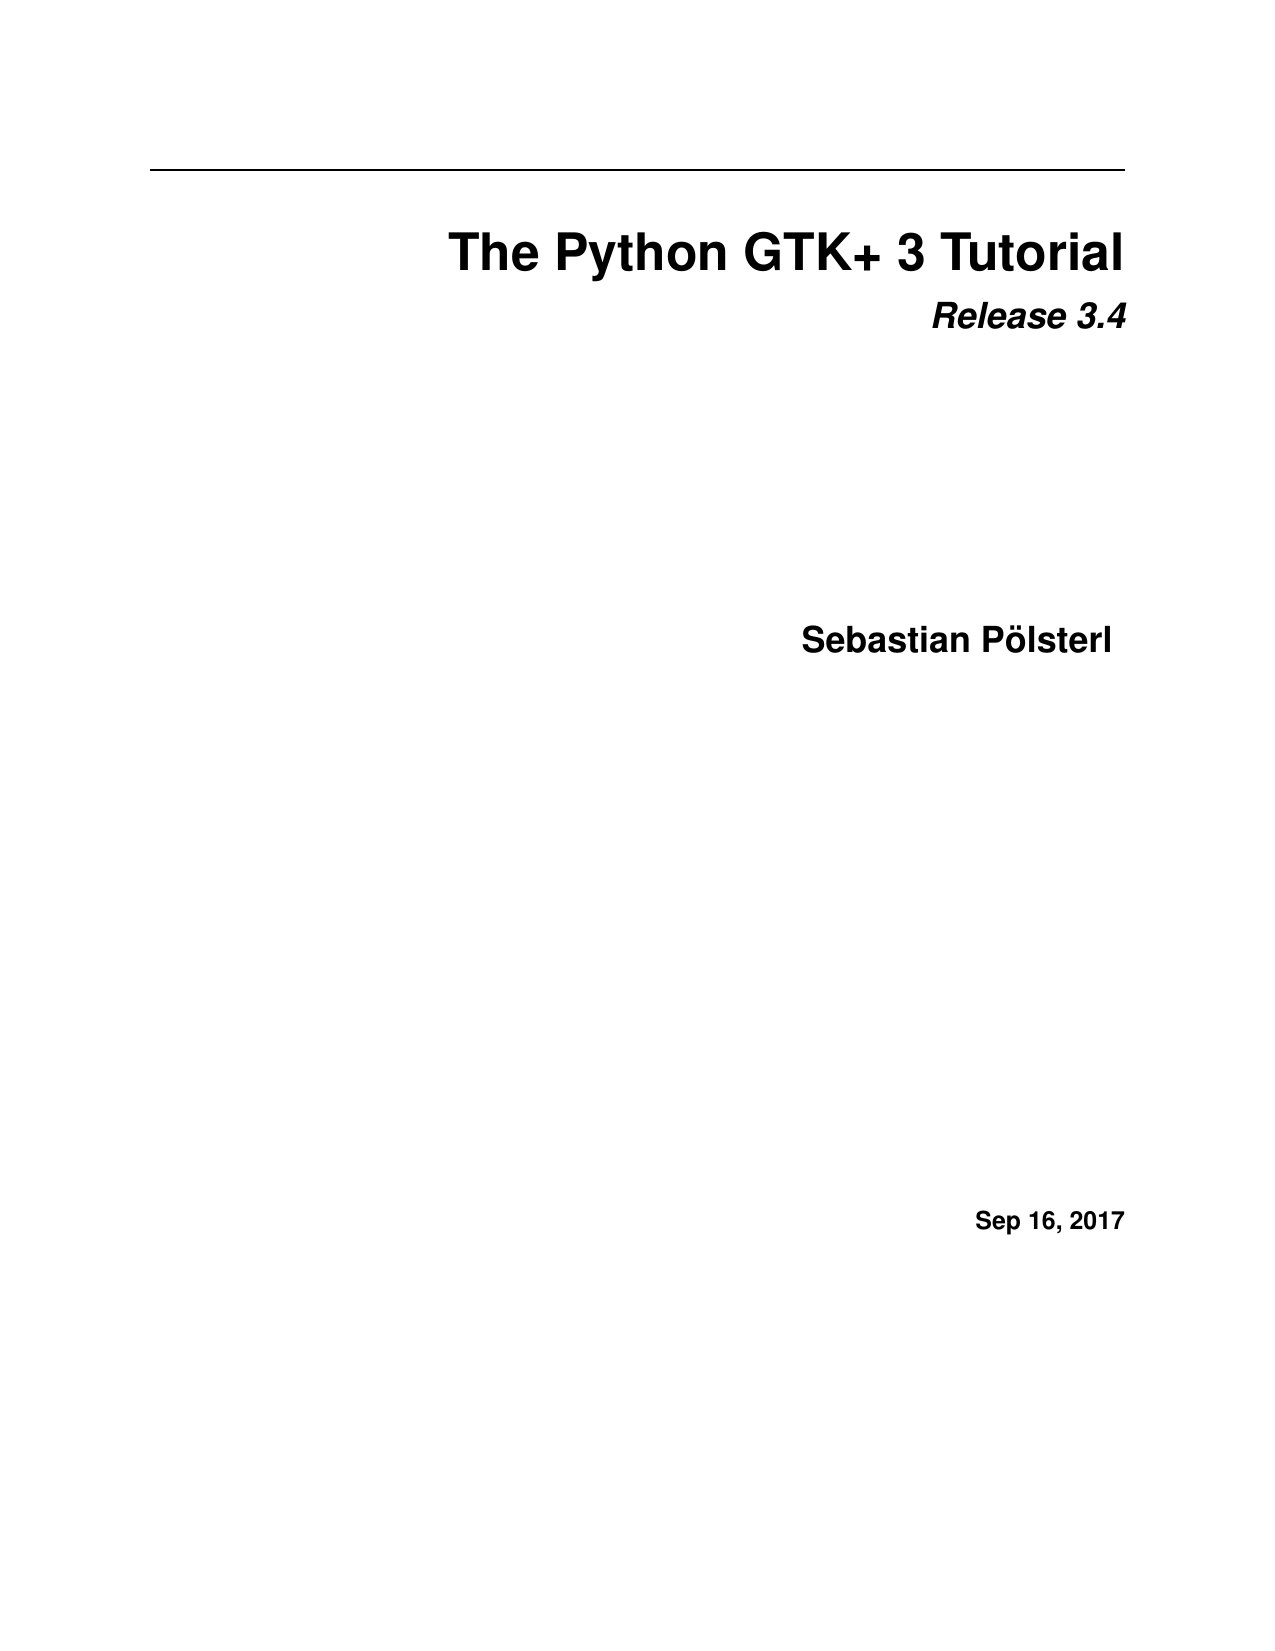 The Python GTK+ 3 Tutorial. Release 3.4, 2017 by Sebastian P?lsterl